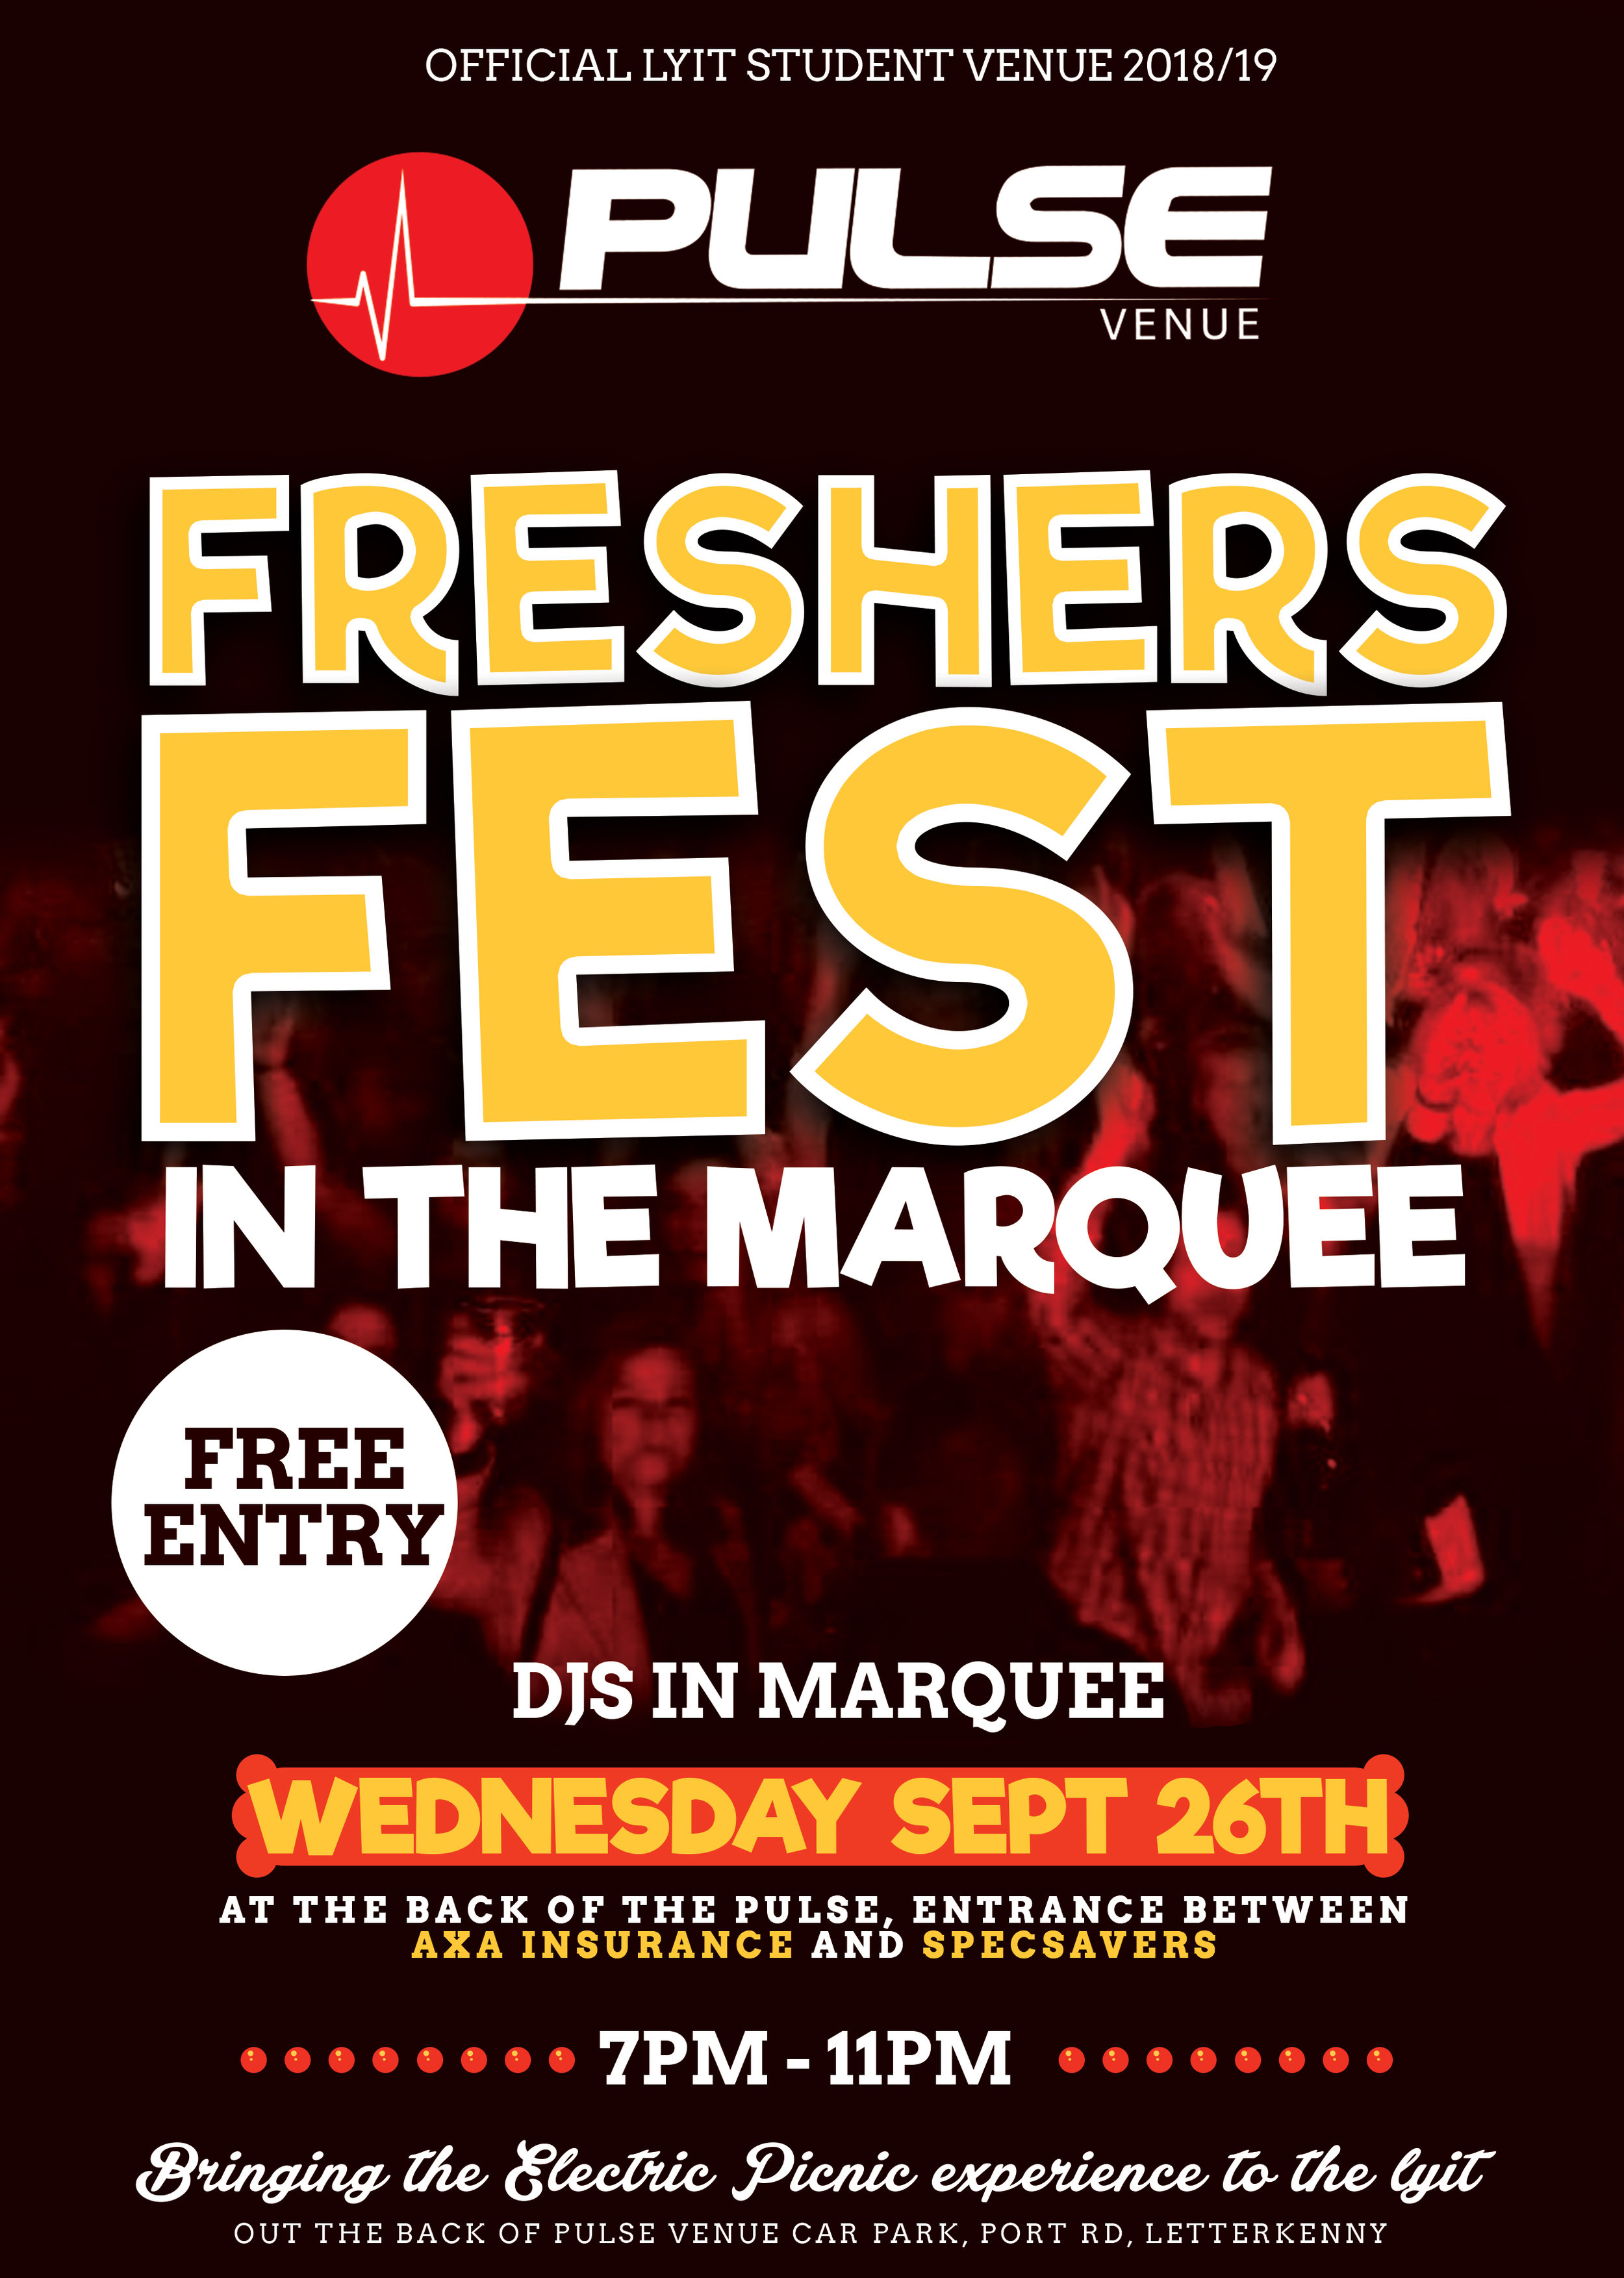 PULSE-VENUE-FRESHERS-SFEST-MARQUEE-WED-SEPT-26-2018.jpg